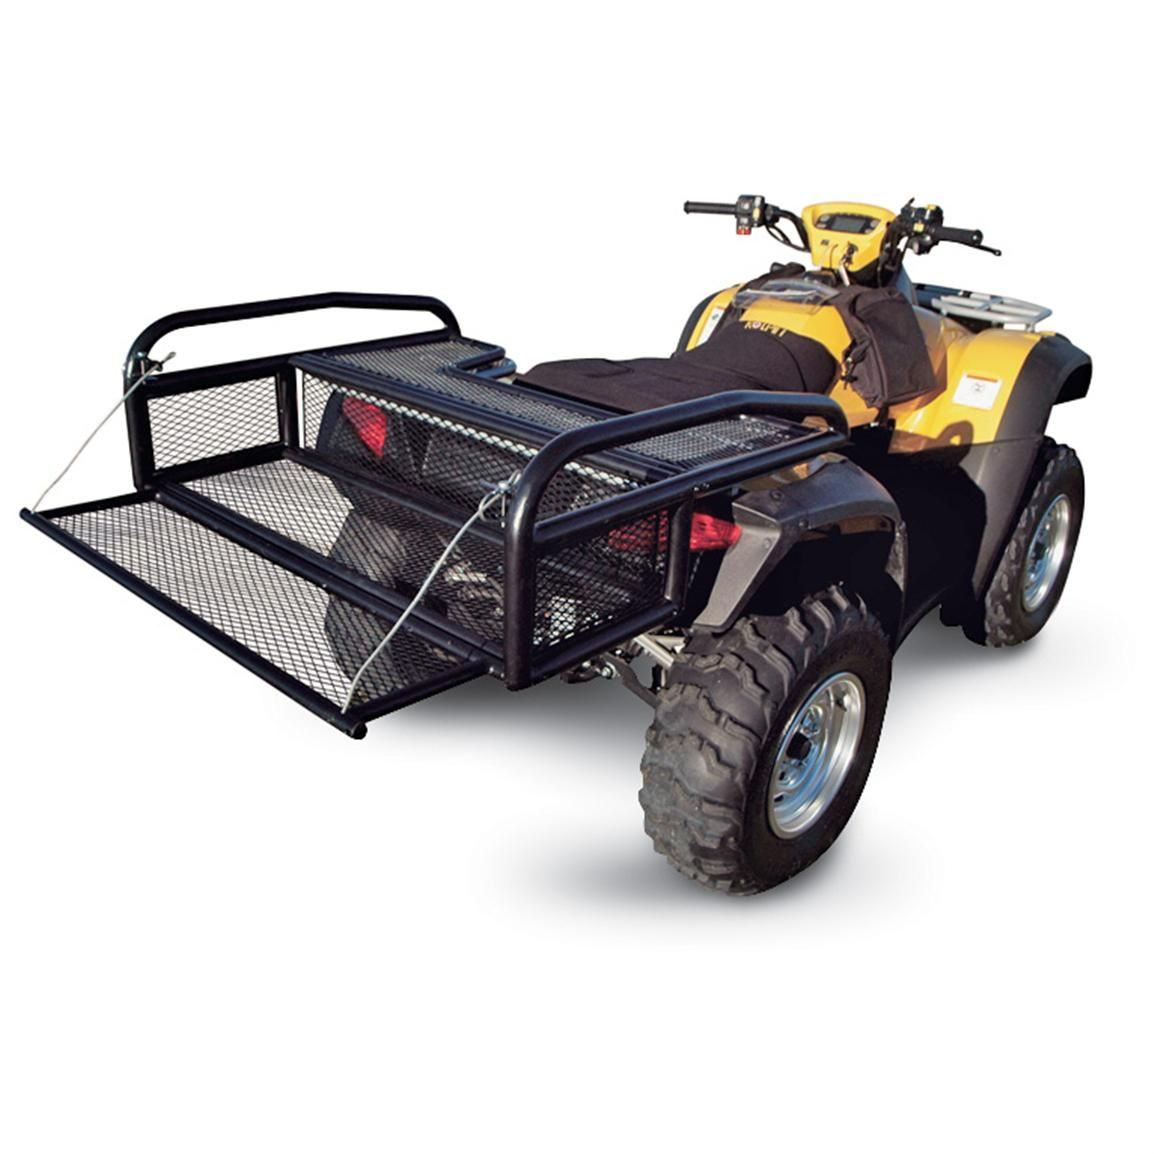 Atv rack hunting and fishing pinterest atv racks atv and sportsmans guide has your kolpin collapsible atv rear drop rack available at a great price in our racks bags collection publicscrutiny Images